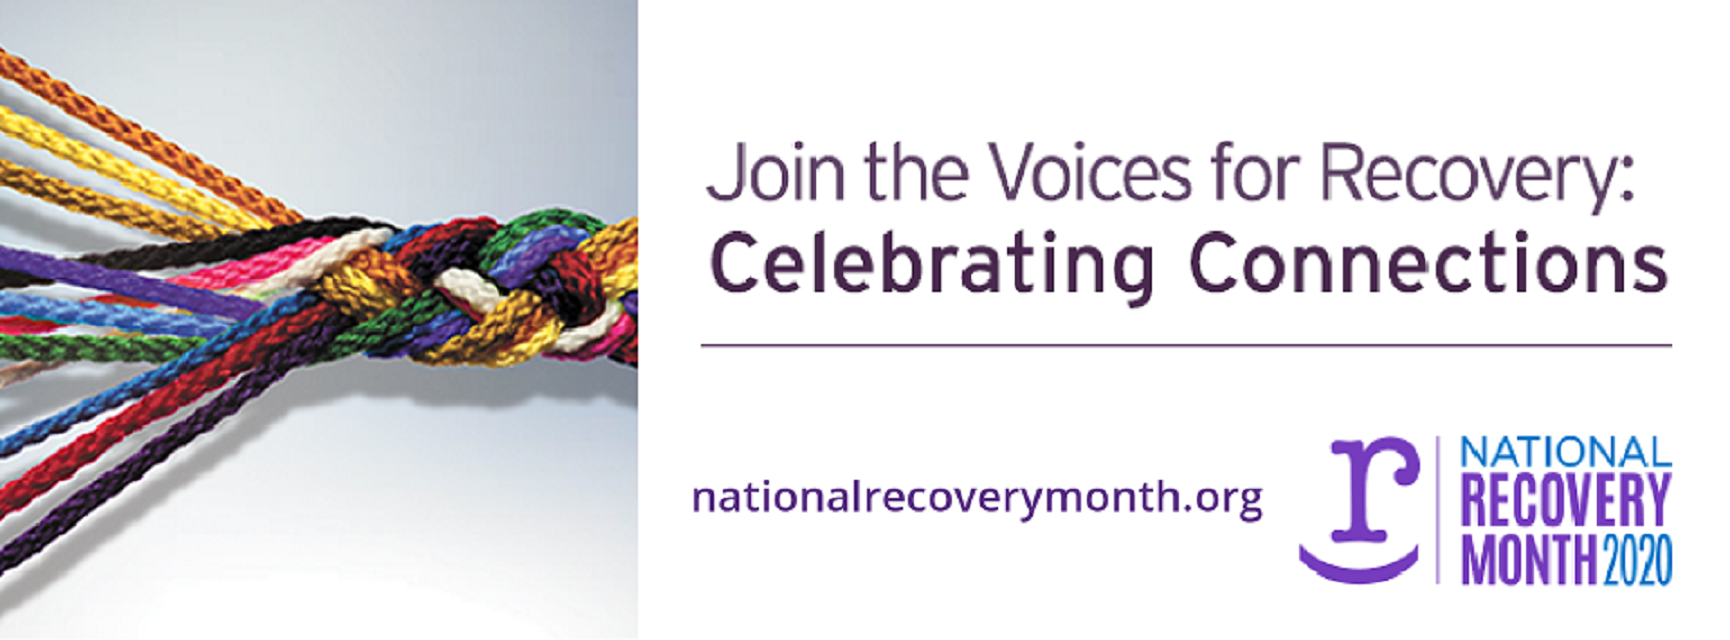 National Recovery Month 2020 - Join the Voices for Recovery